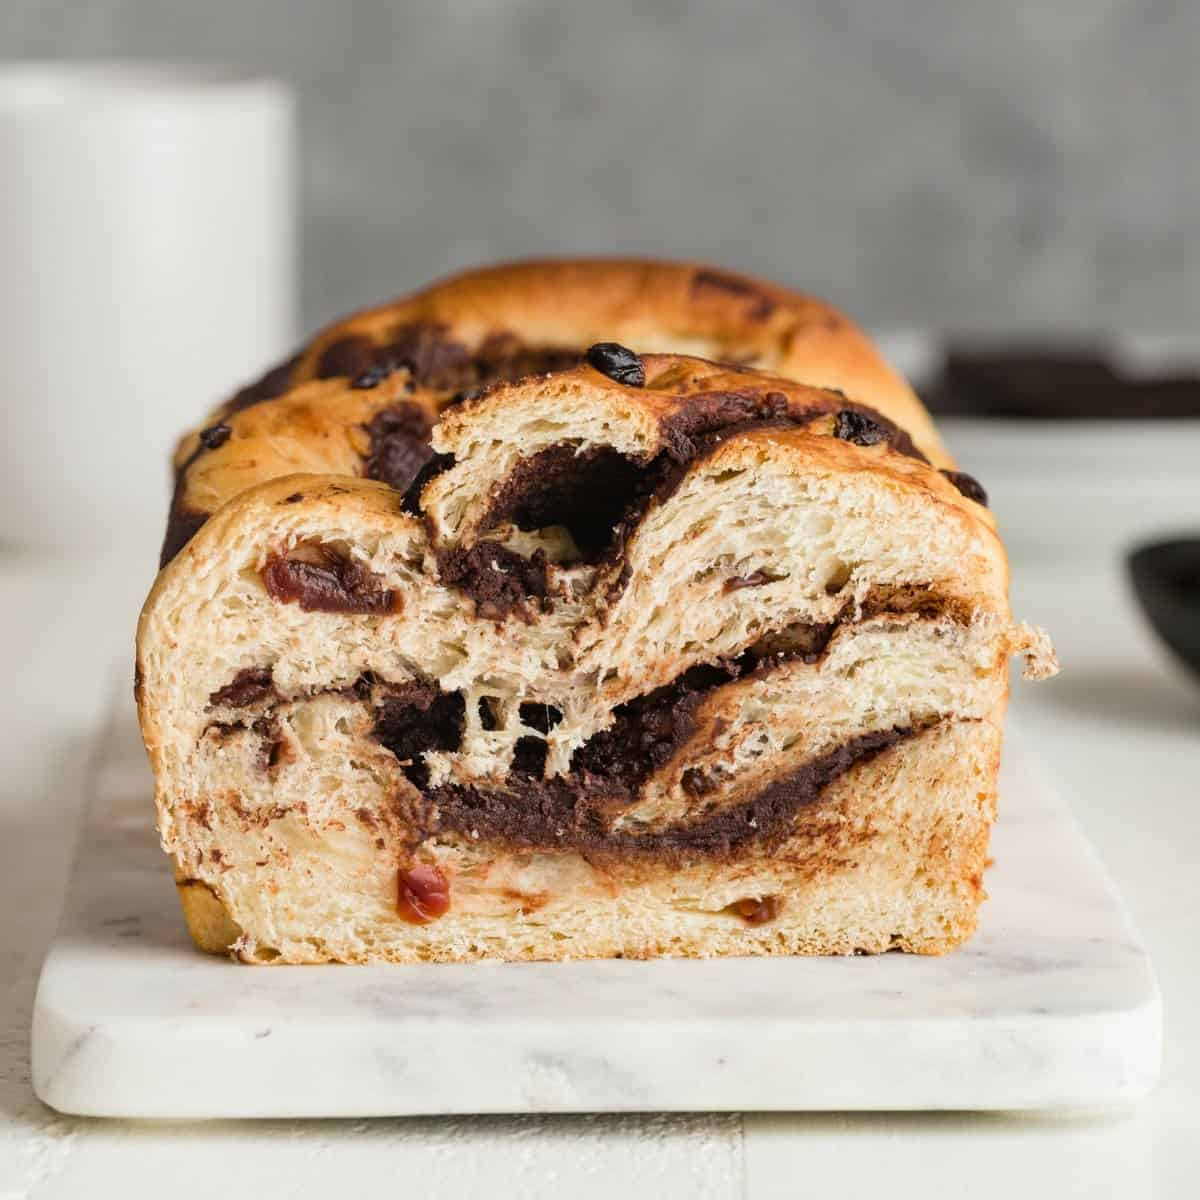 front view of chocolate swirl bread with cherries